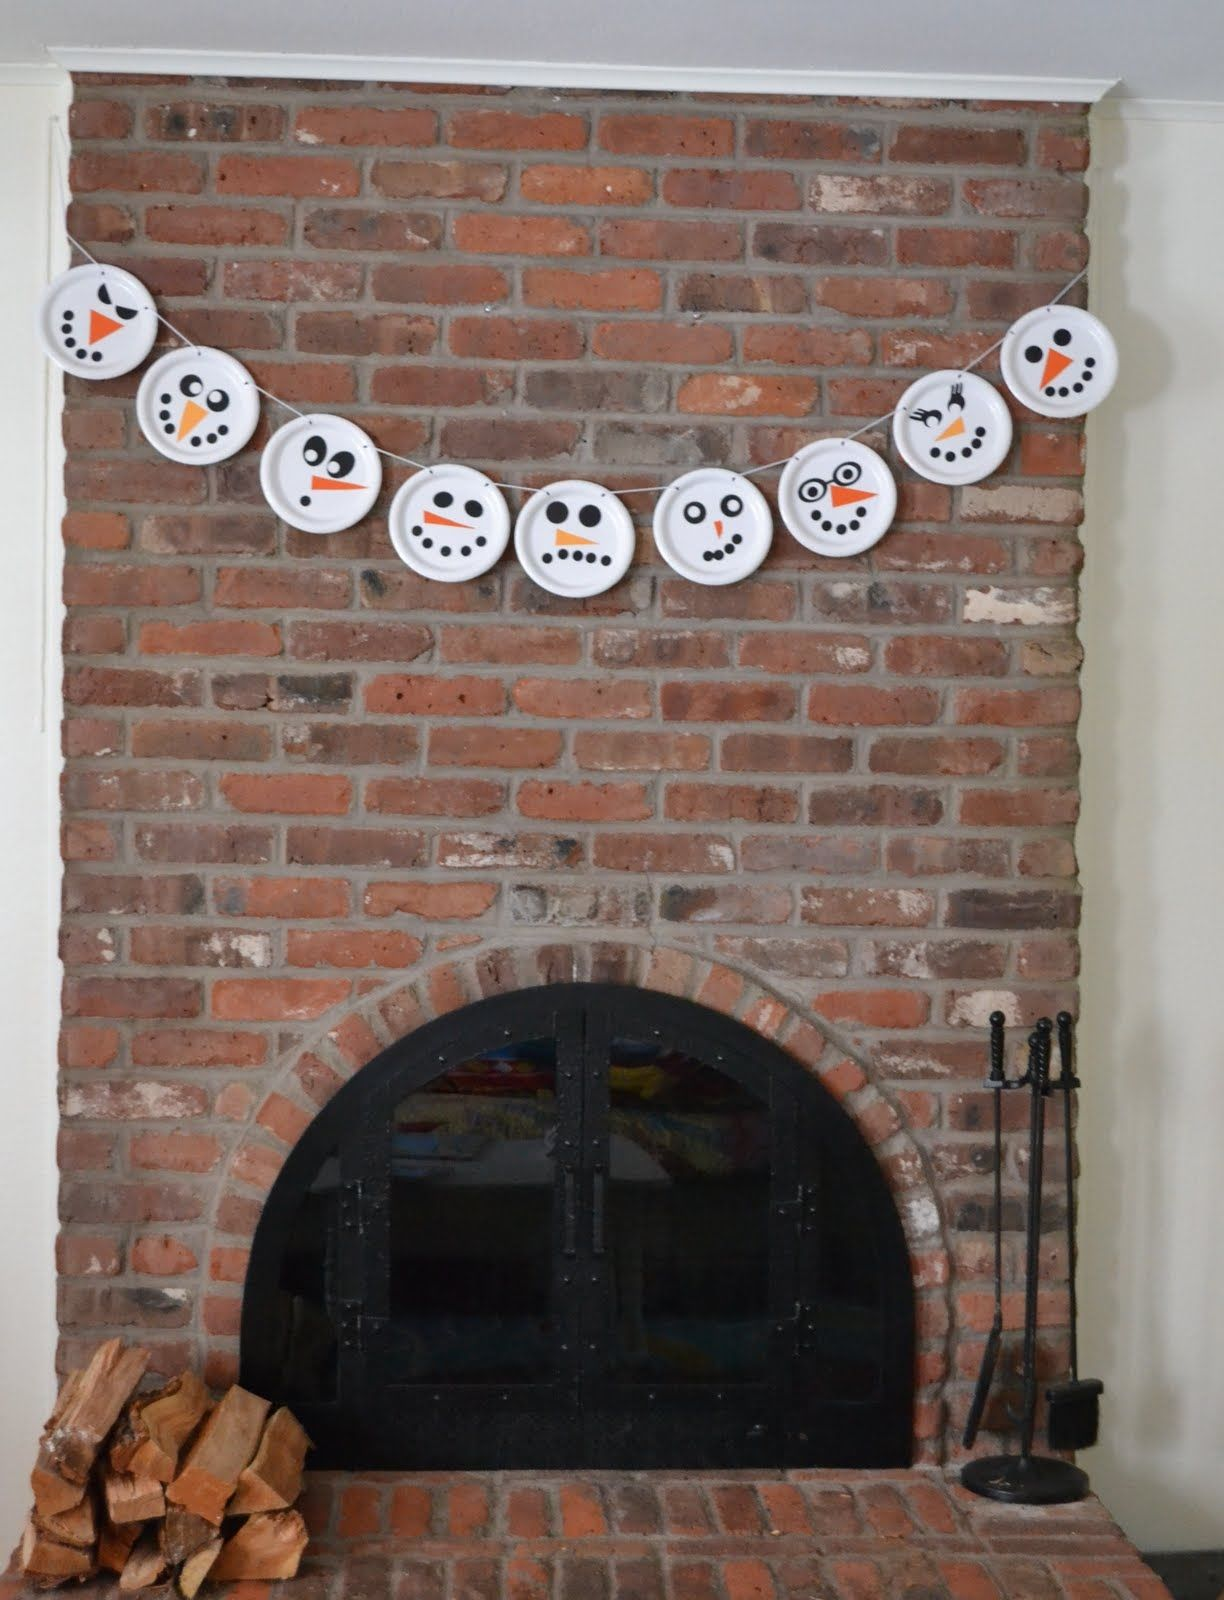 Diy paper plate snowman garland pictures photos and images for diy paper plate snowman garland jeuxipadfo Gallery